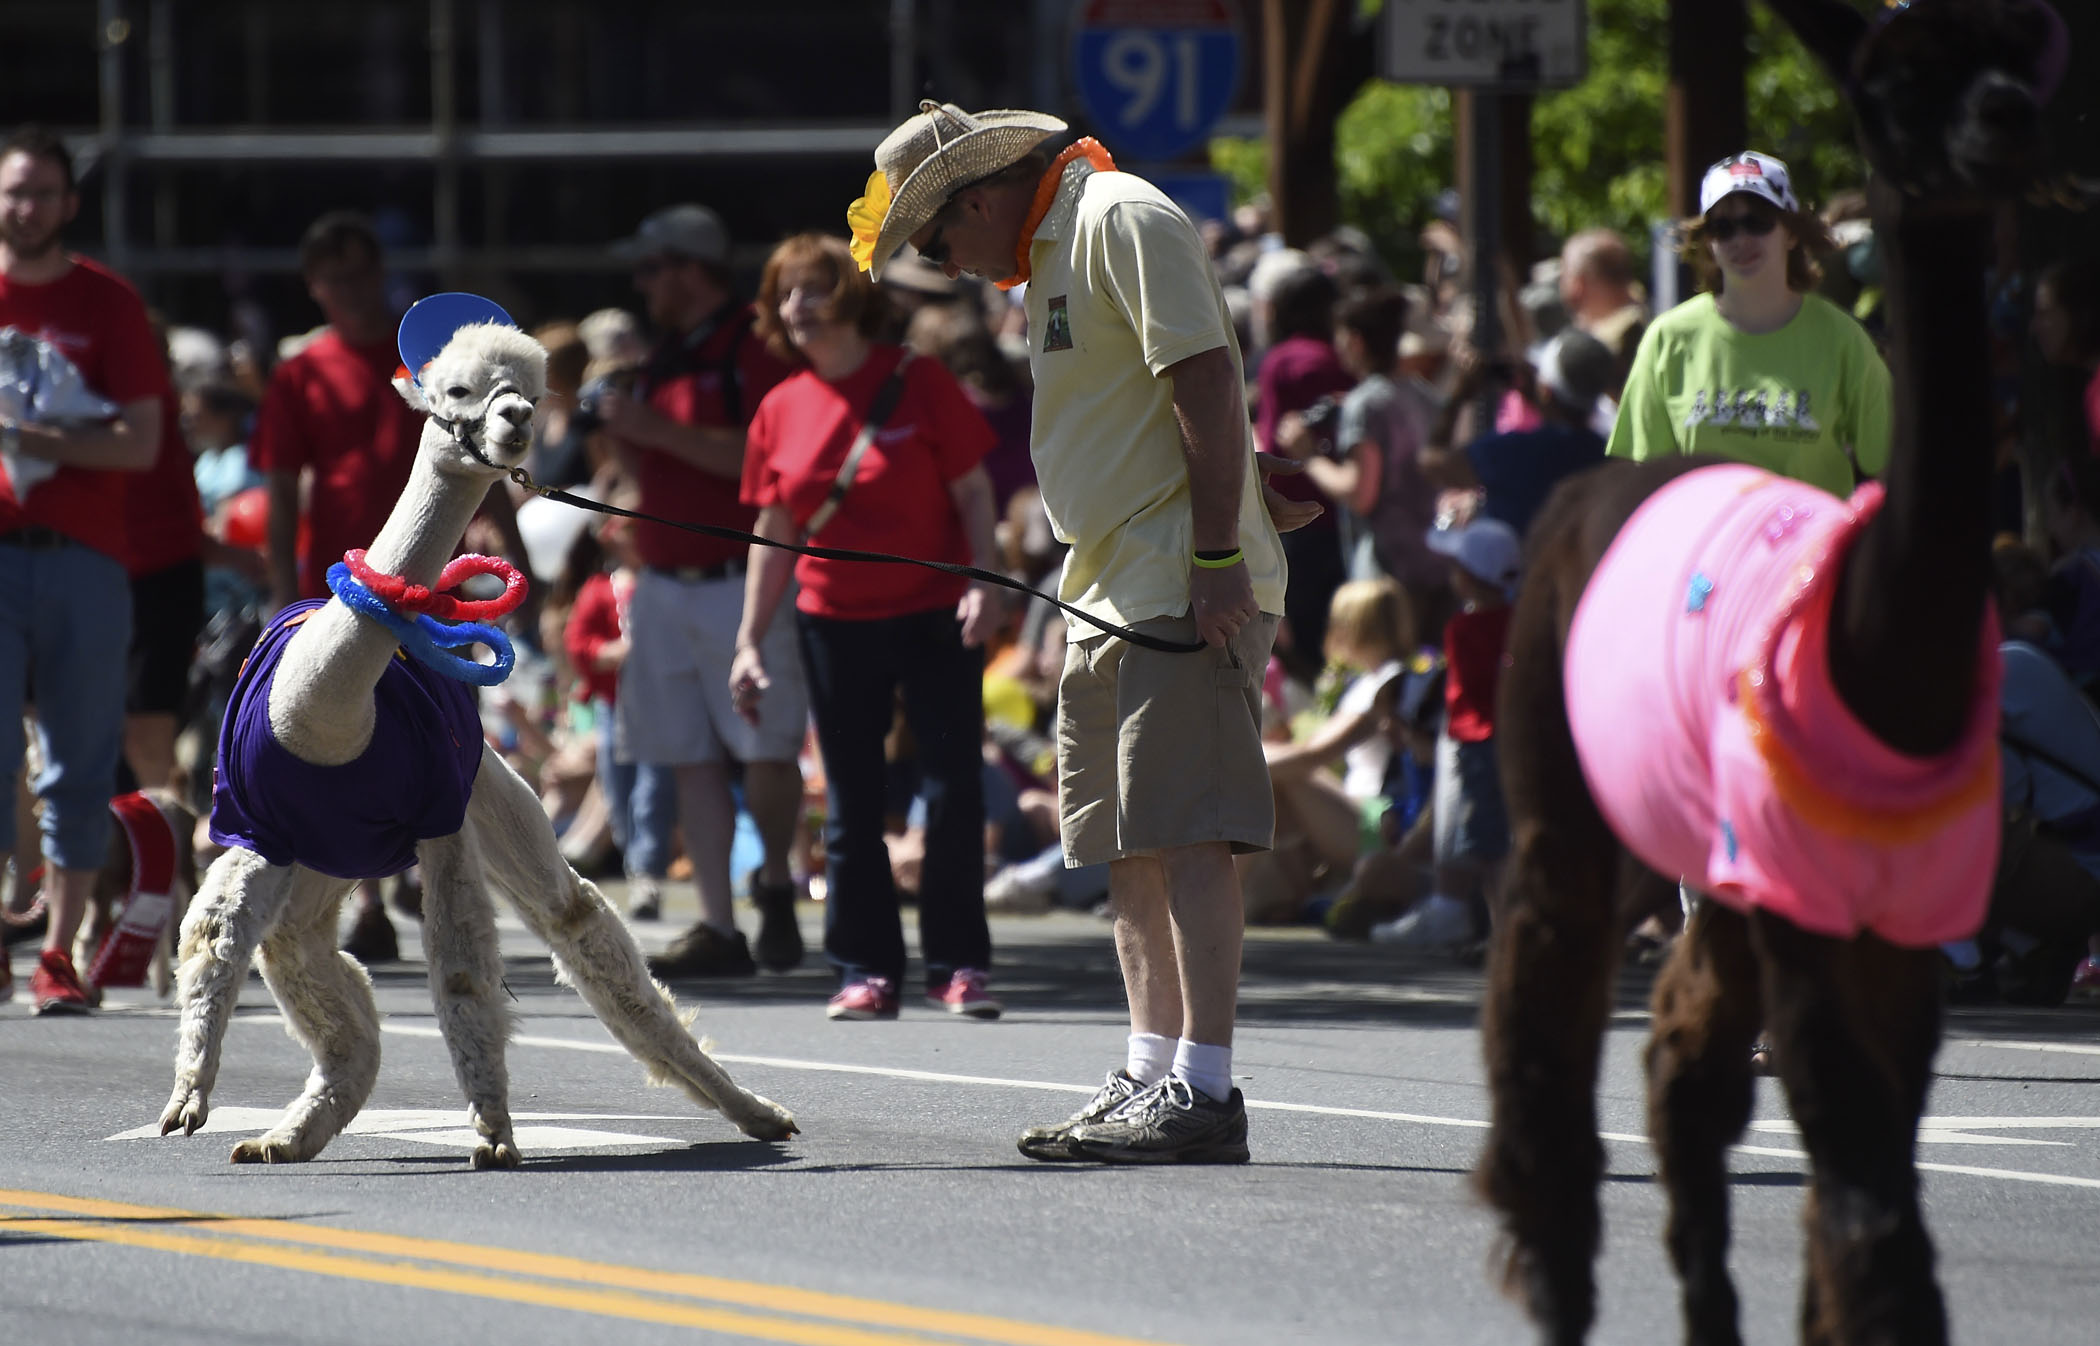 An alpaca with Mystic Meadows Alpacas refuses to cooperate with its leader during the Strolling of the Heifers parade in Brattleboro, Vt. on June 7, 2014.